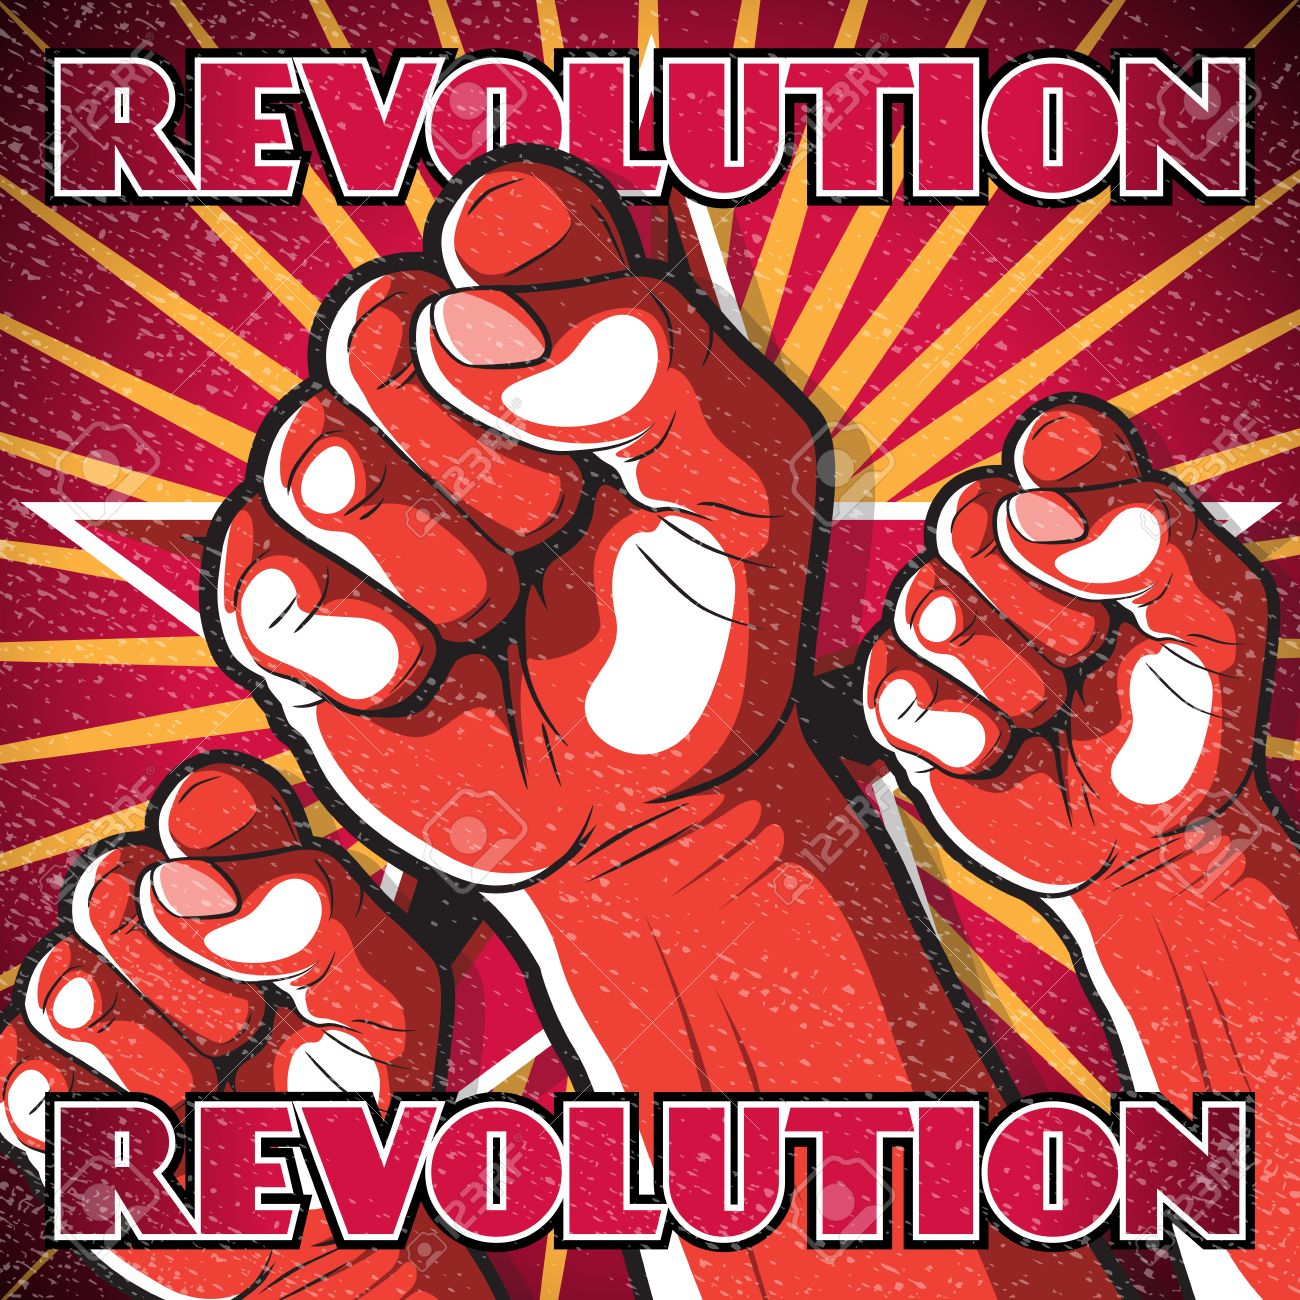 retro punching fist revolution sign great illustration of russian